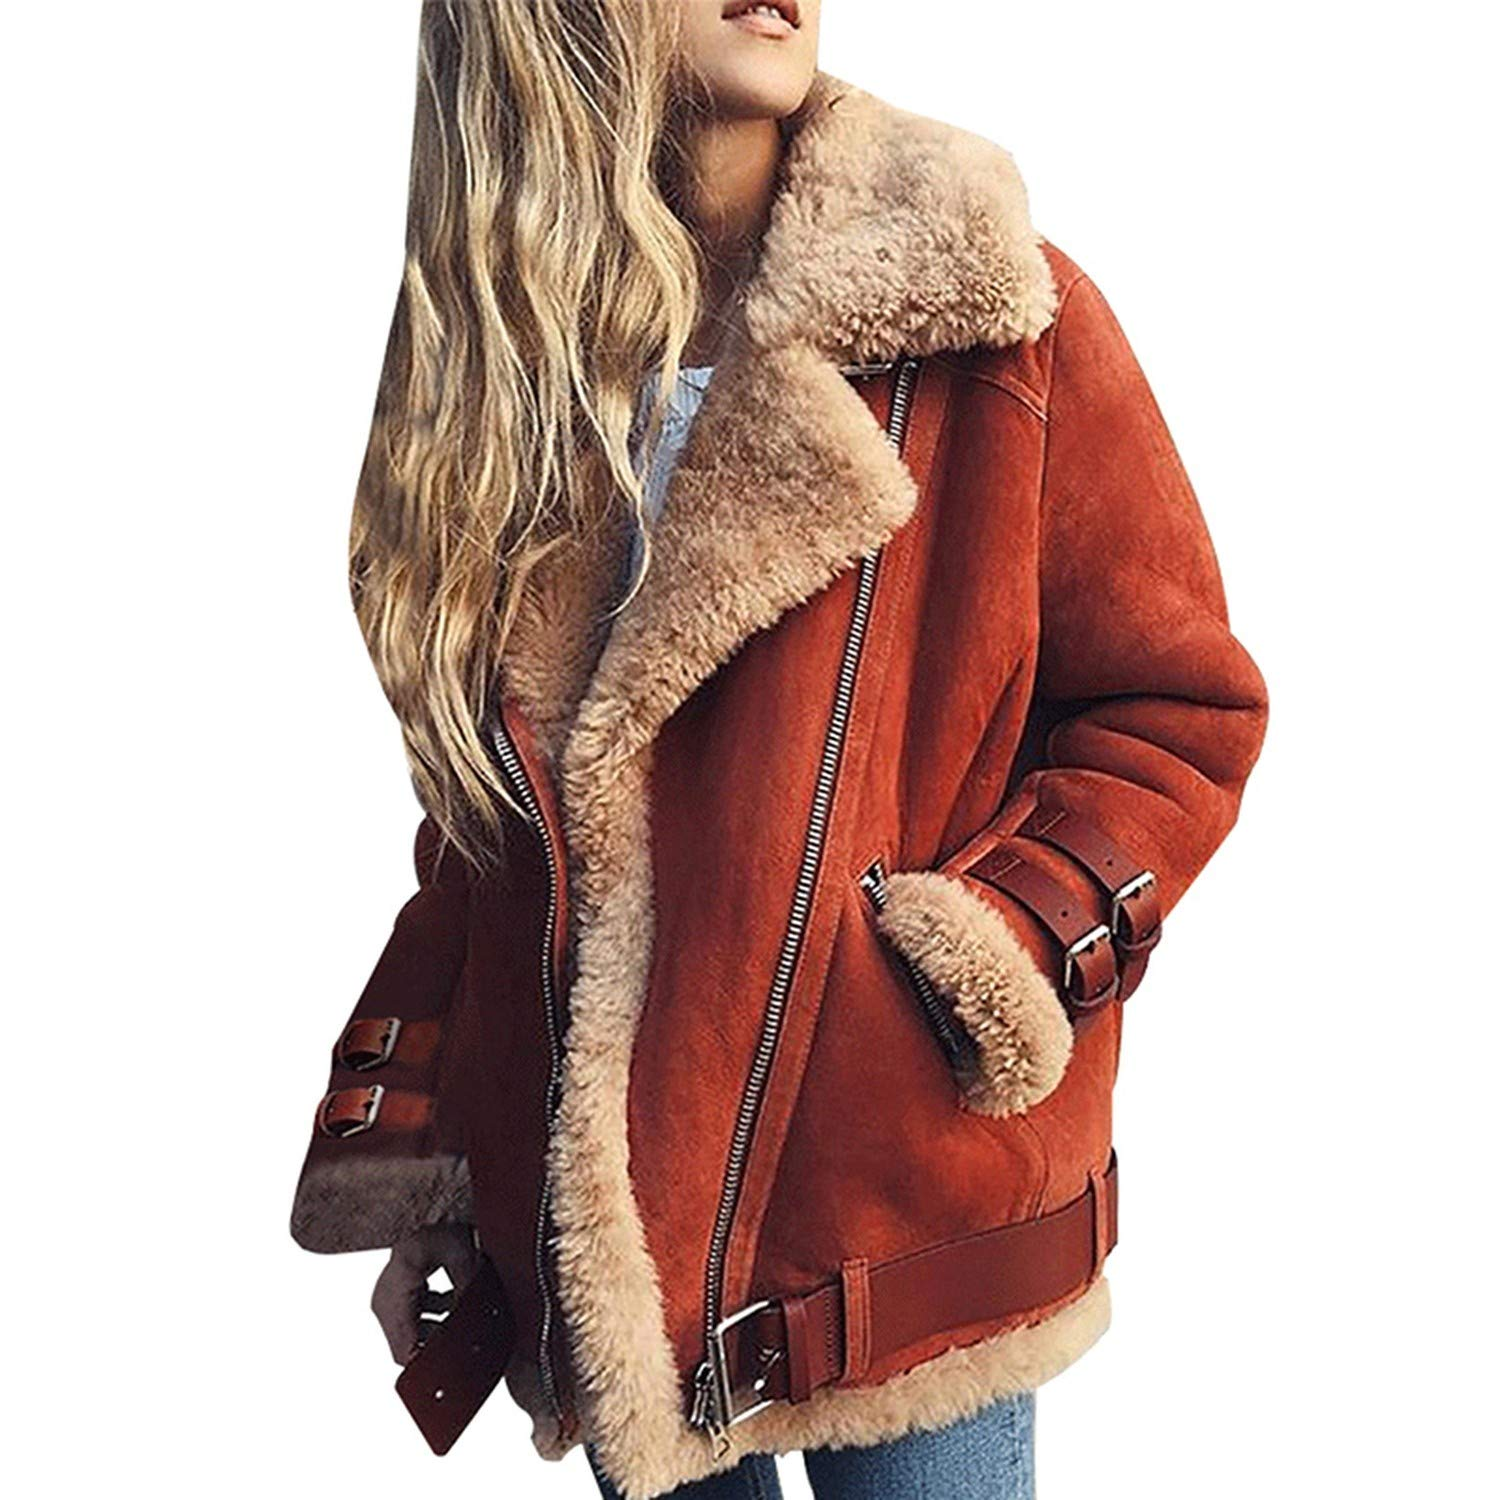 Red colorfulspace Winter Women Berber Fleece Casual Jacket Warm Thicken Jacket Streetwear Coat Plus Size